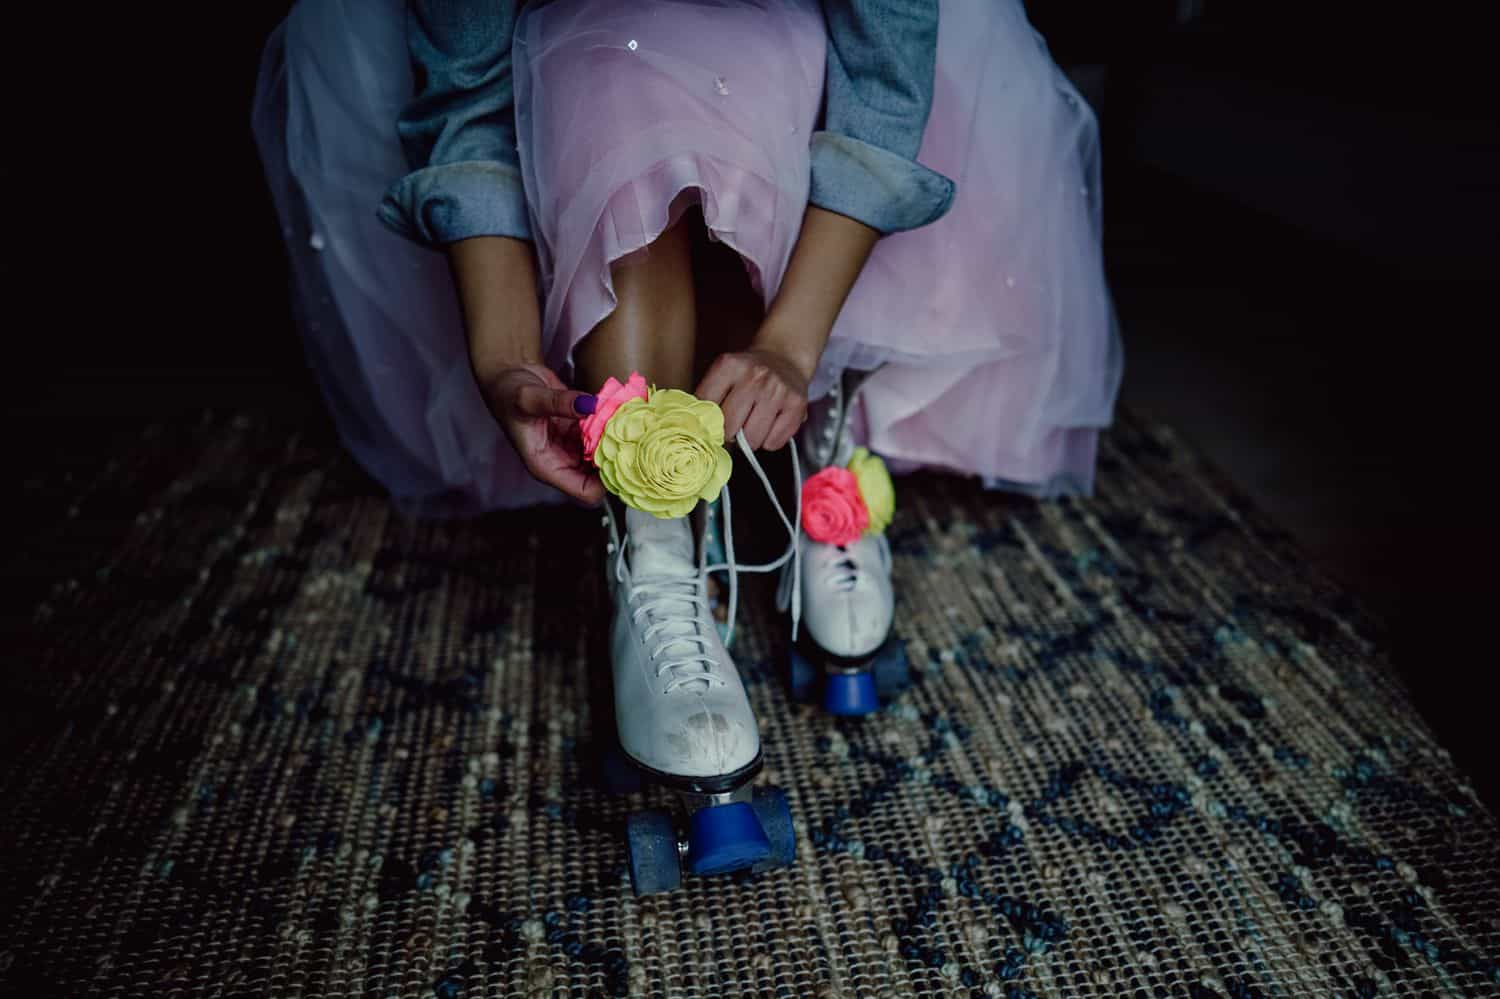 A bride laces up her roller skates for a fun-filled wedding reception